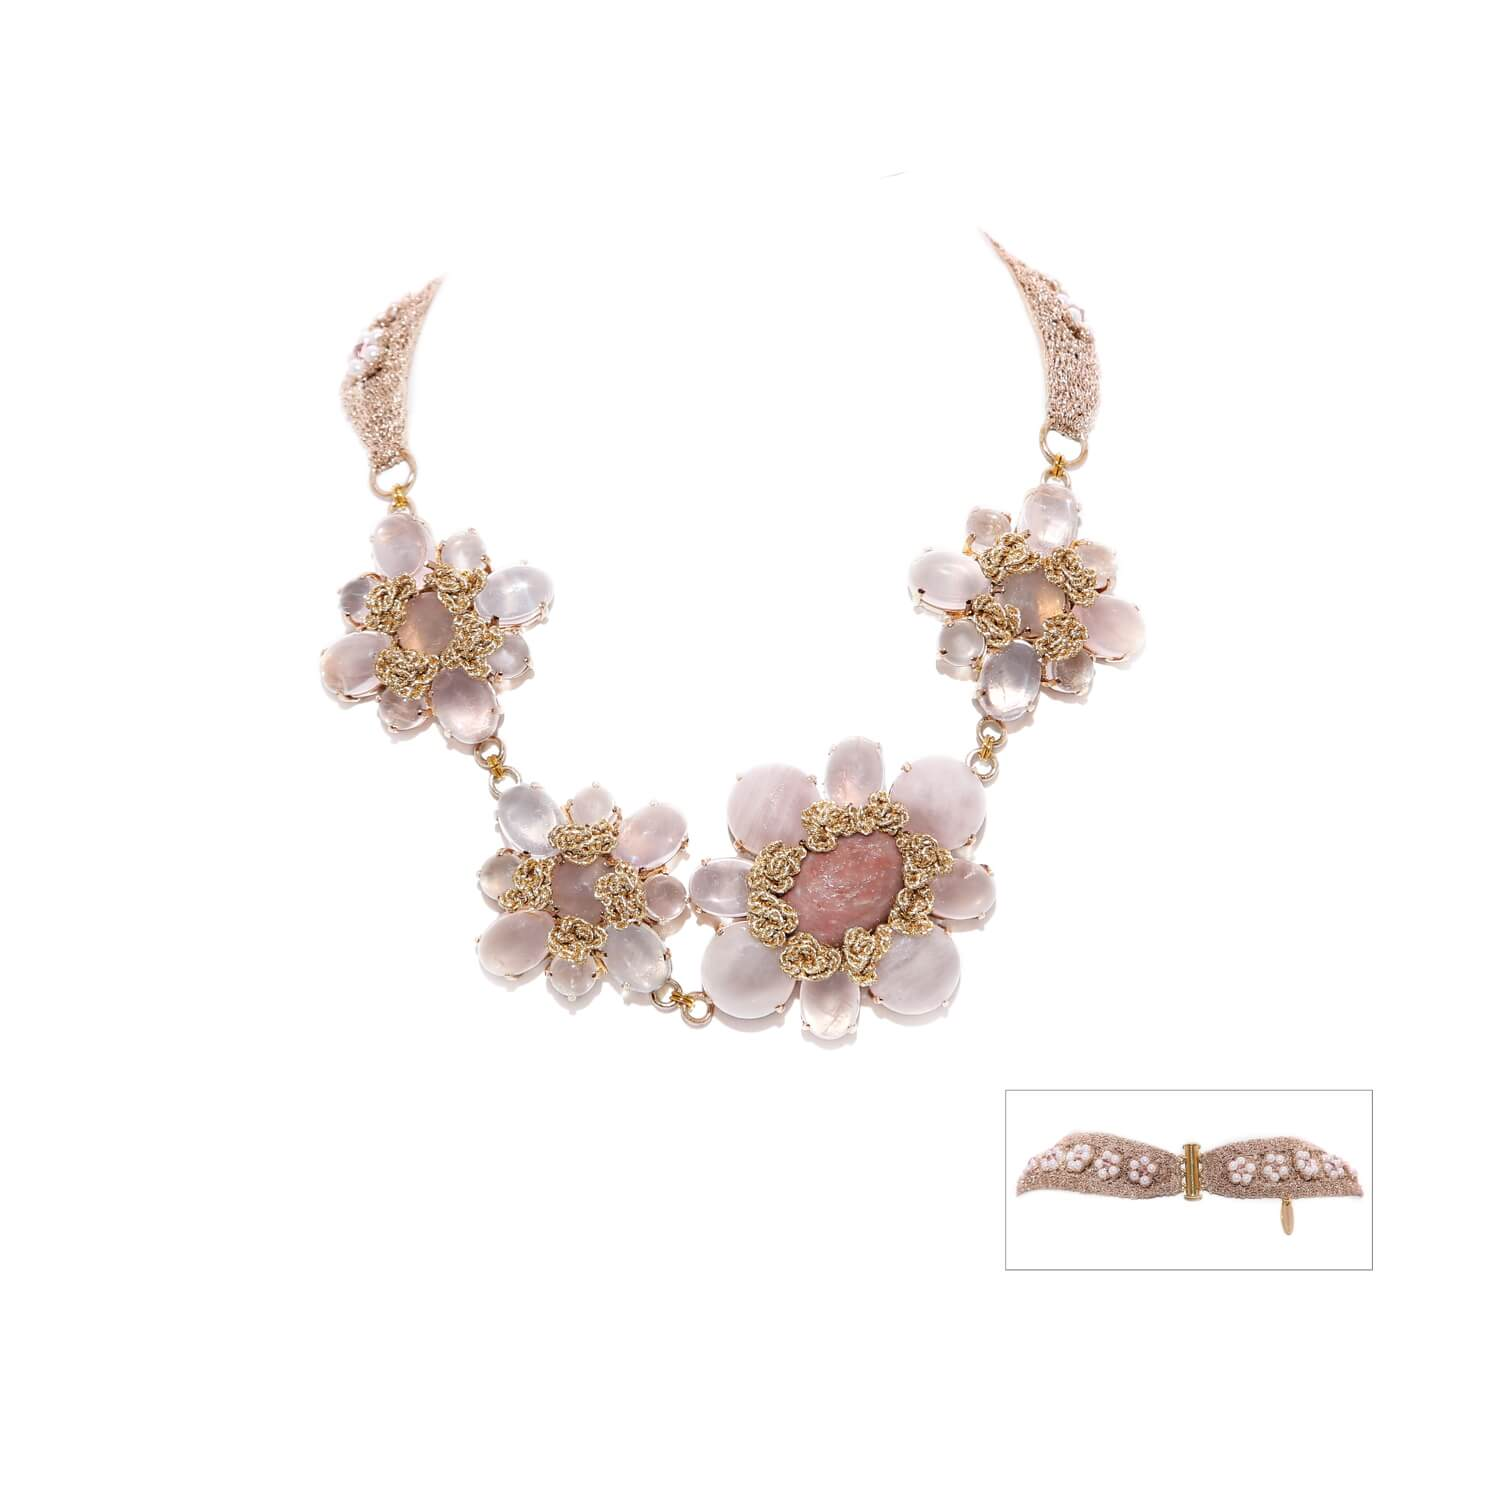 Nomad Floral Sash Choker Crochet Necklace - Rose Quartz